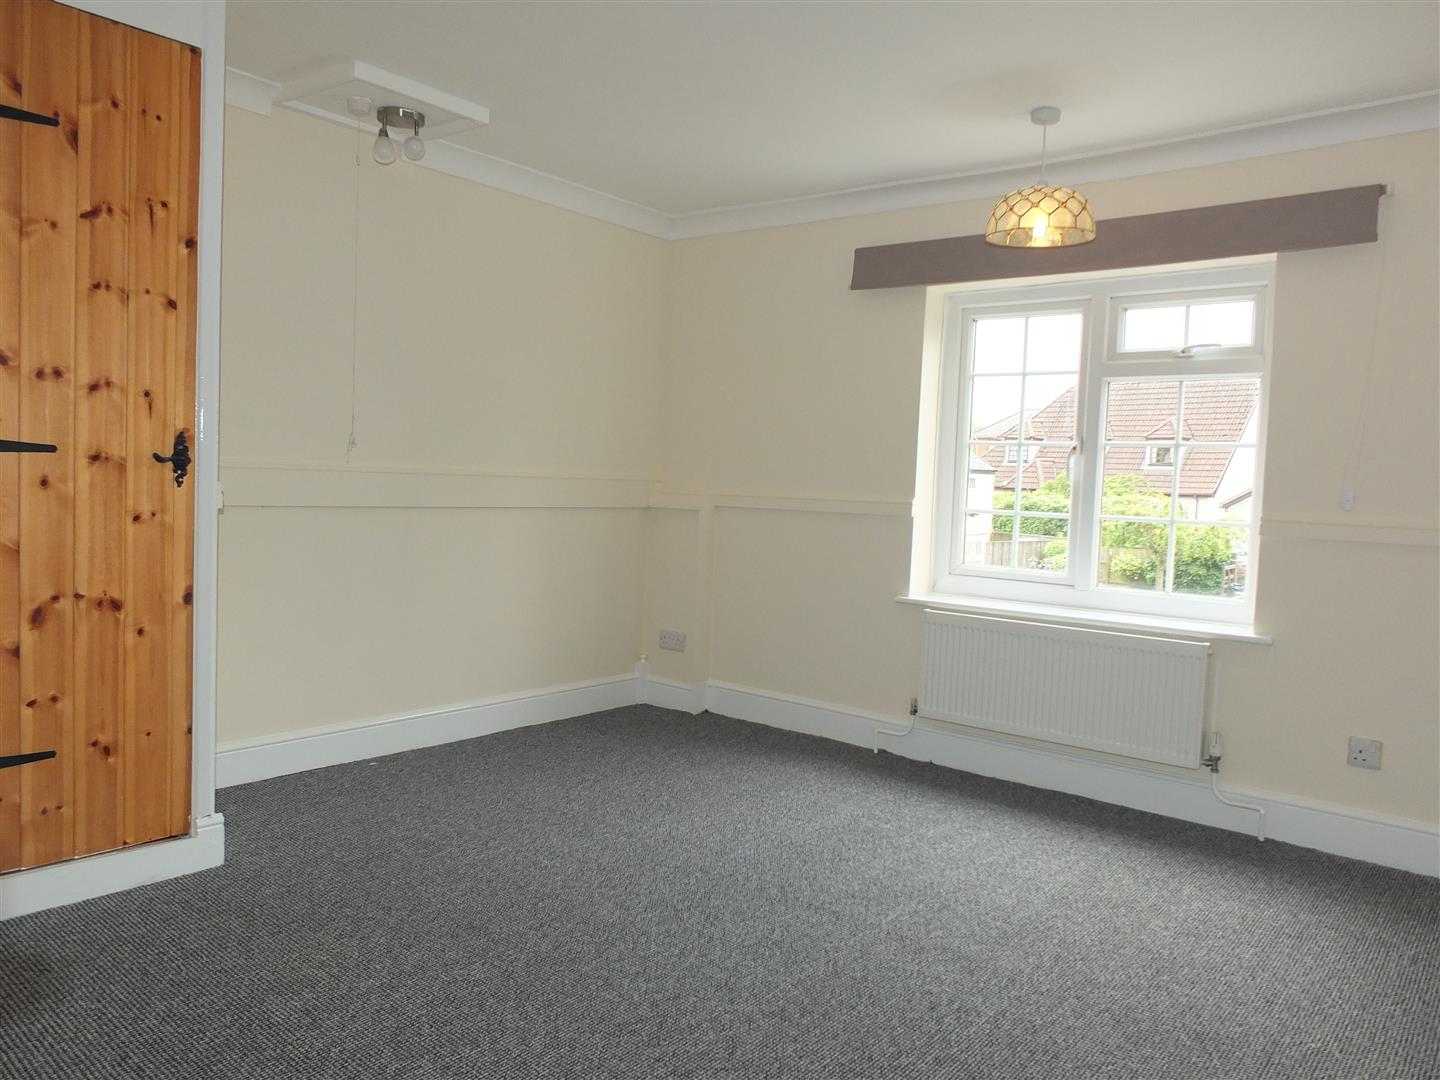 2 bed house to rent in Long Sutton Spalding, PE12 9DH 5